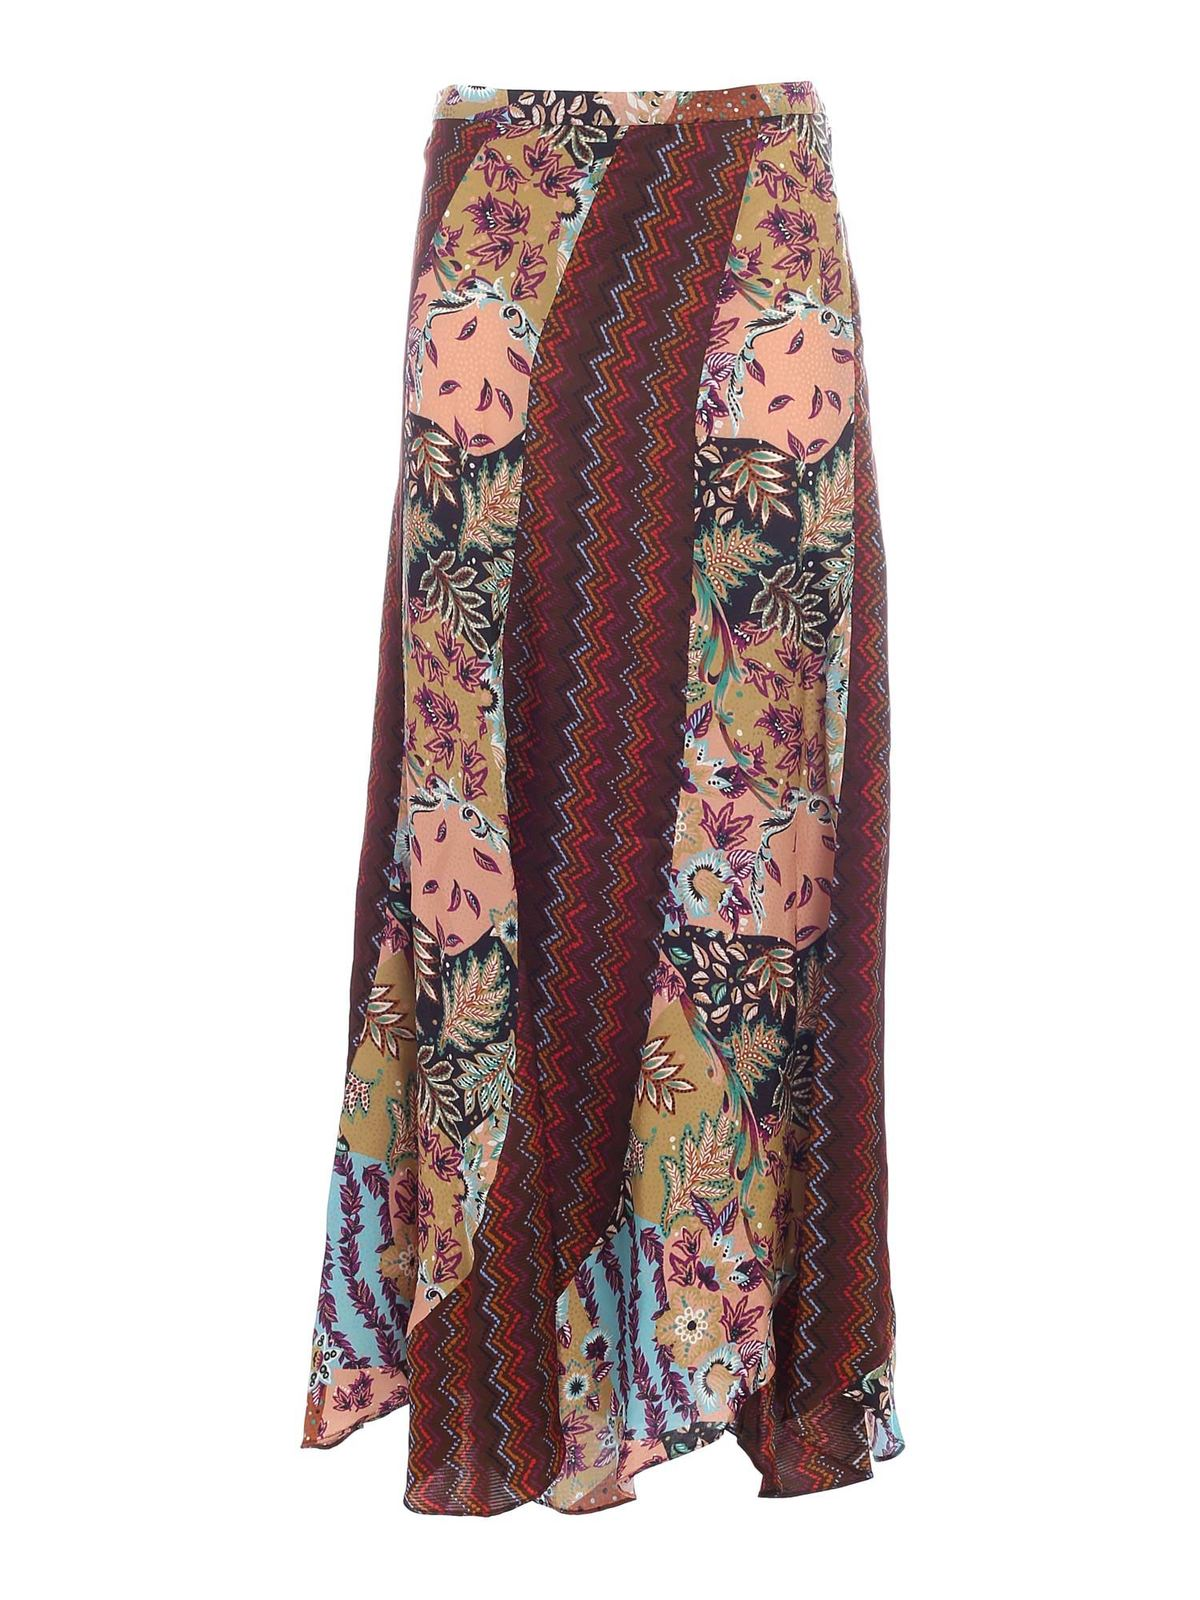 Missoni FLORAL PATTERN MULTICOLOR LONG SKIRT